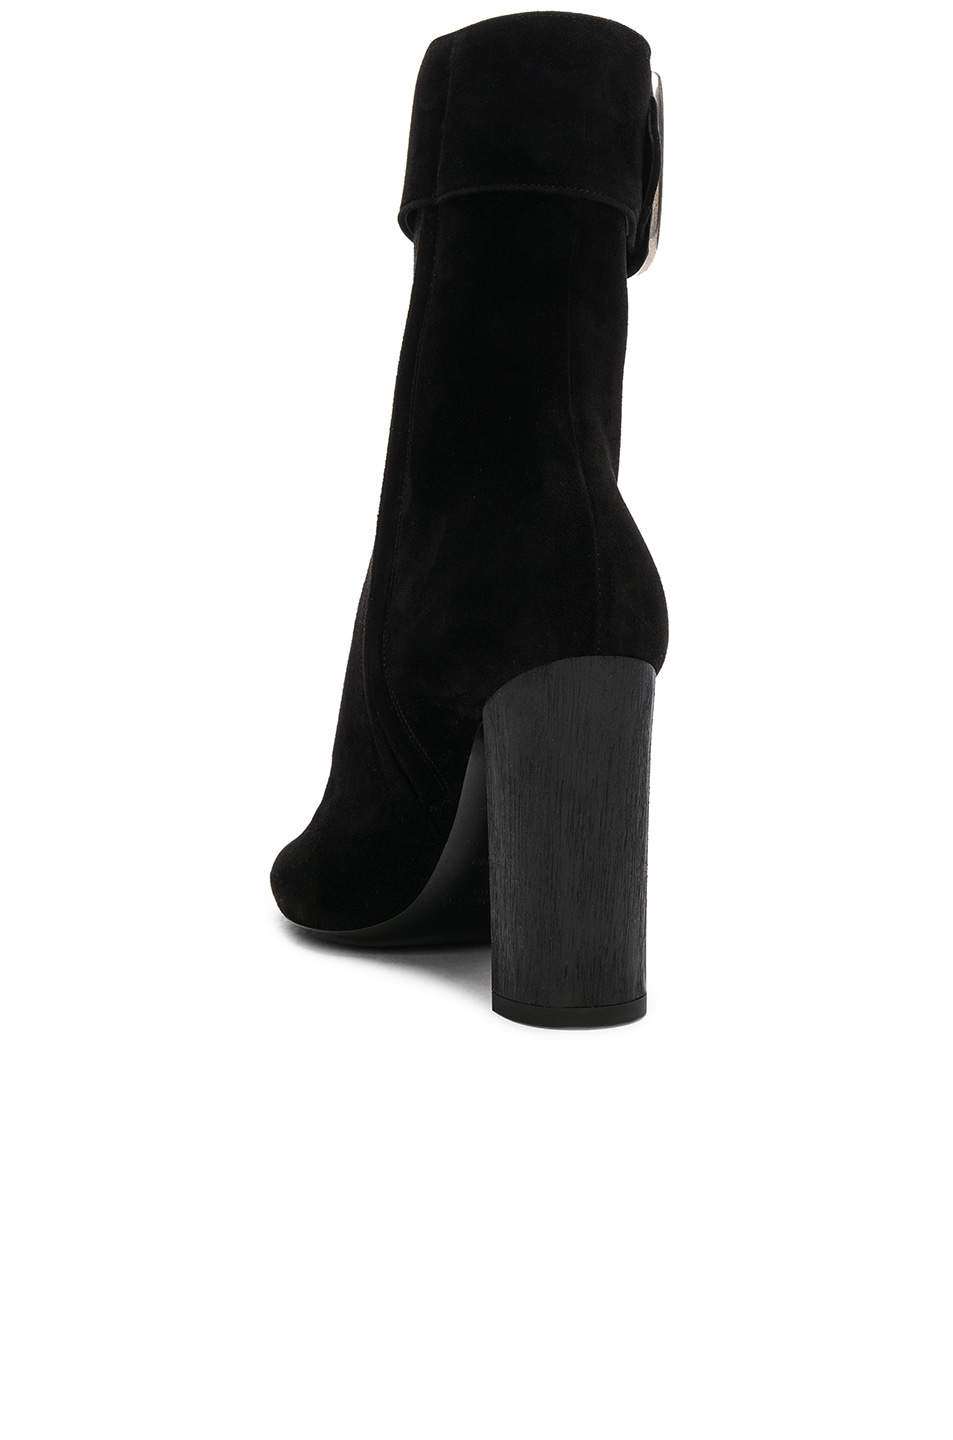 Image 3 of Saint Laurent Suede Joplin Buckle Boots in Black